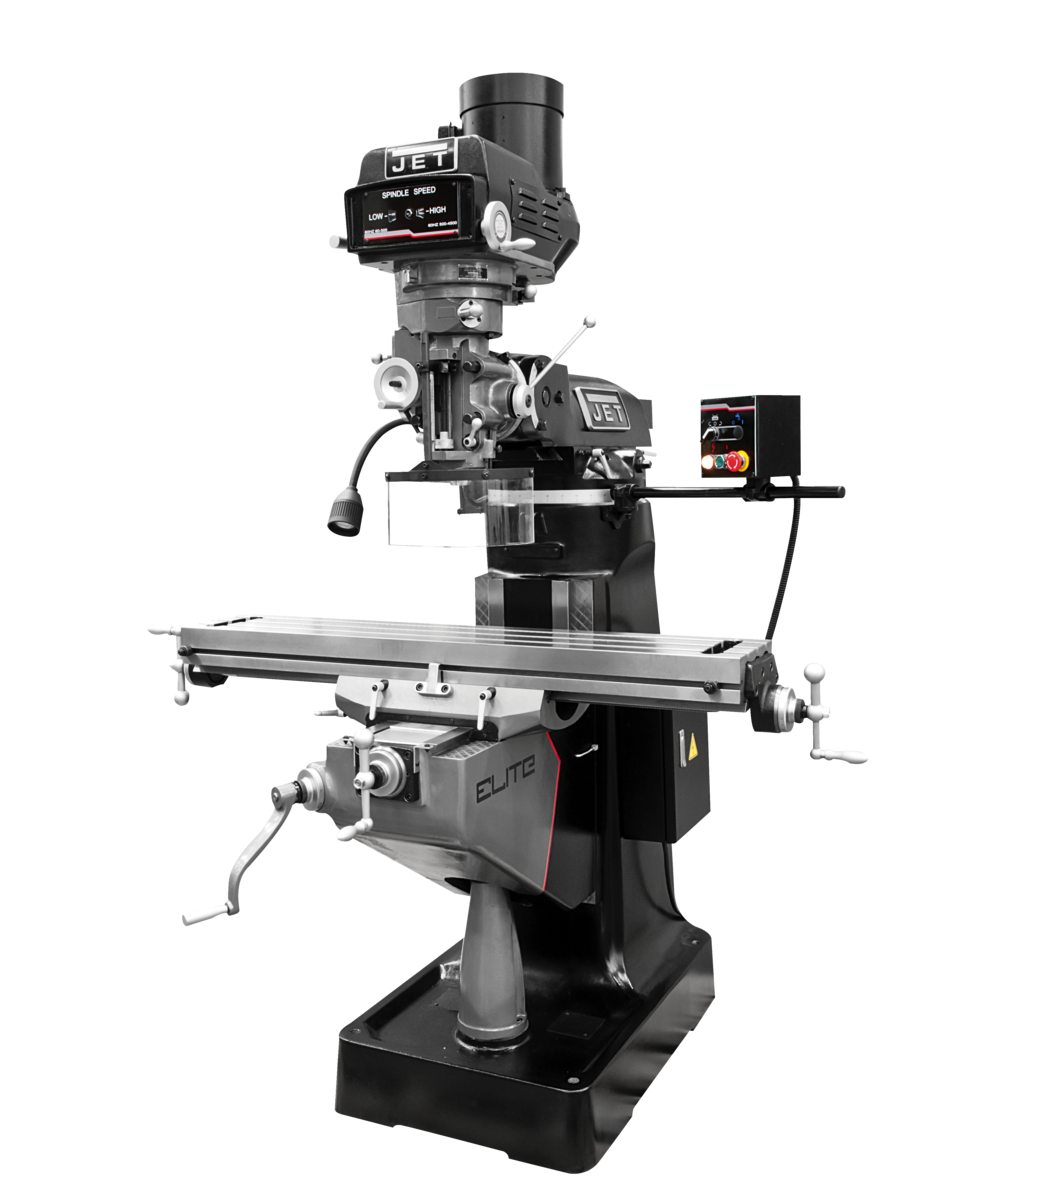 ETM-949 Mill with 3-Axis ACU-RITE 203 (Knee) DRO and Servo X, Y-Axis Powerfeeds